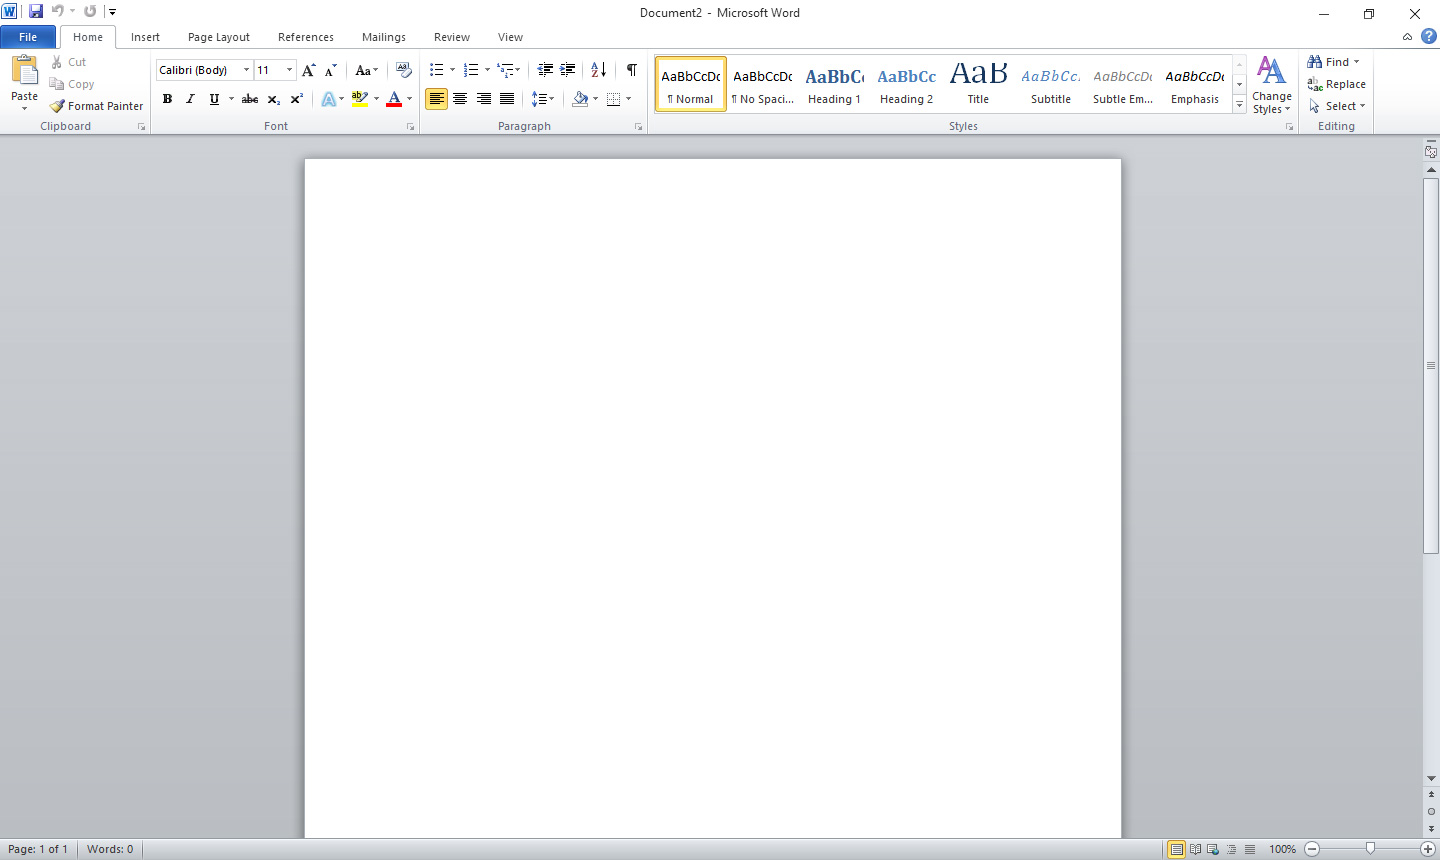 MS Word 2010 Interface